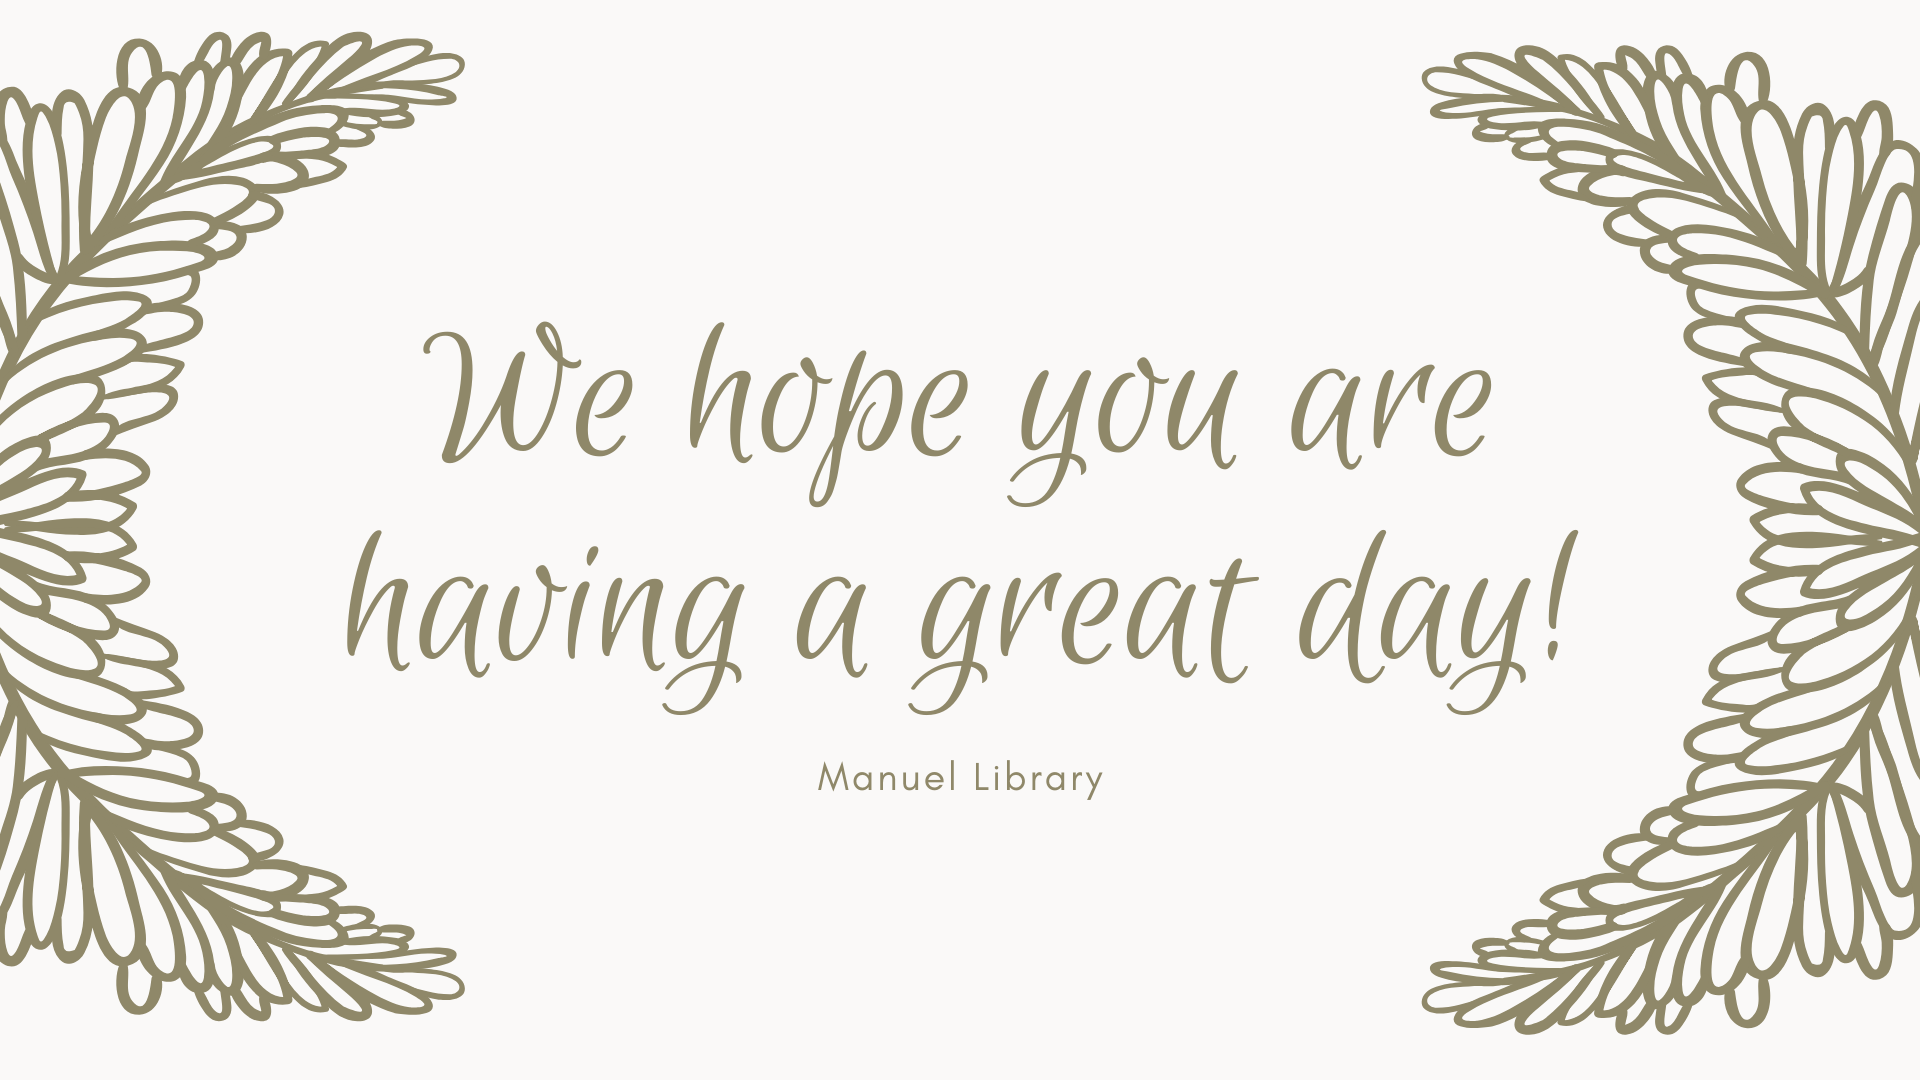 We hope you are having a great day!